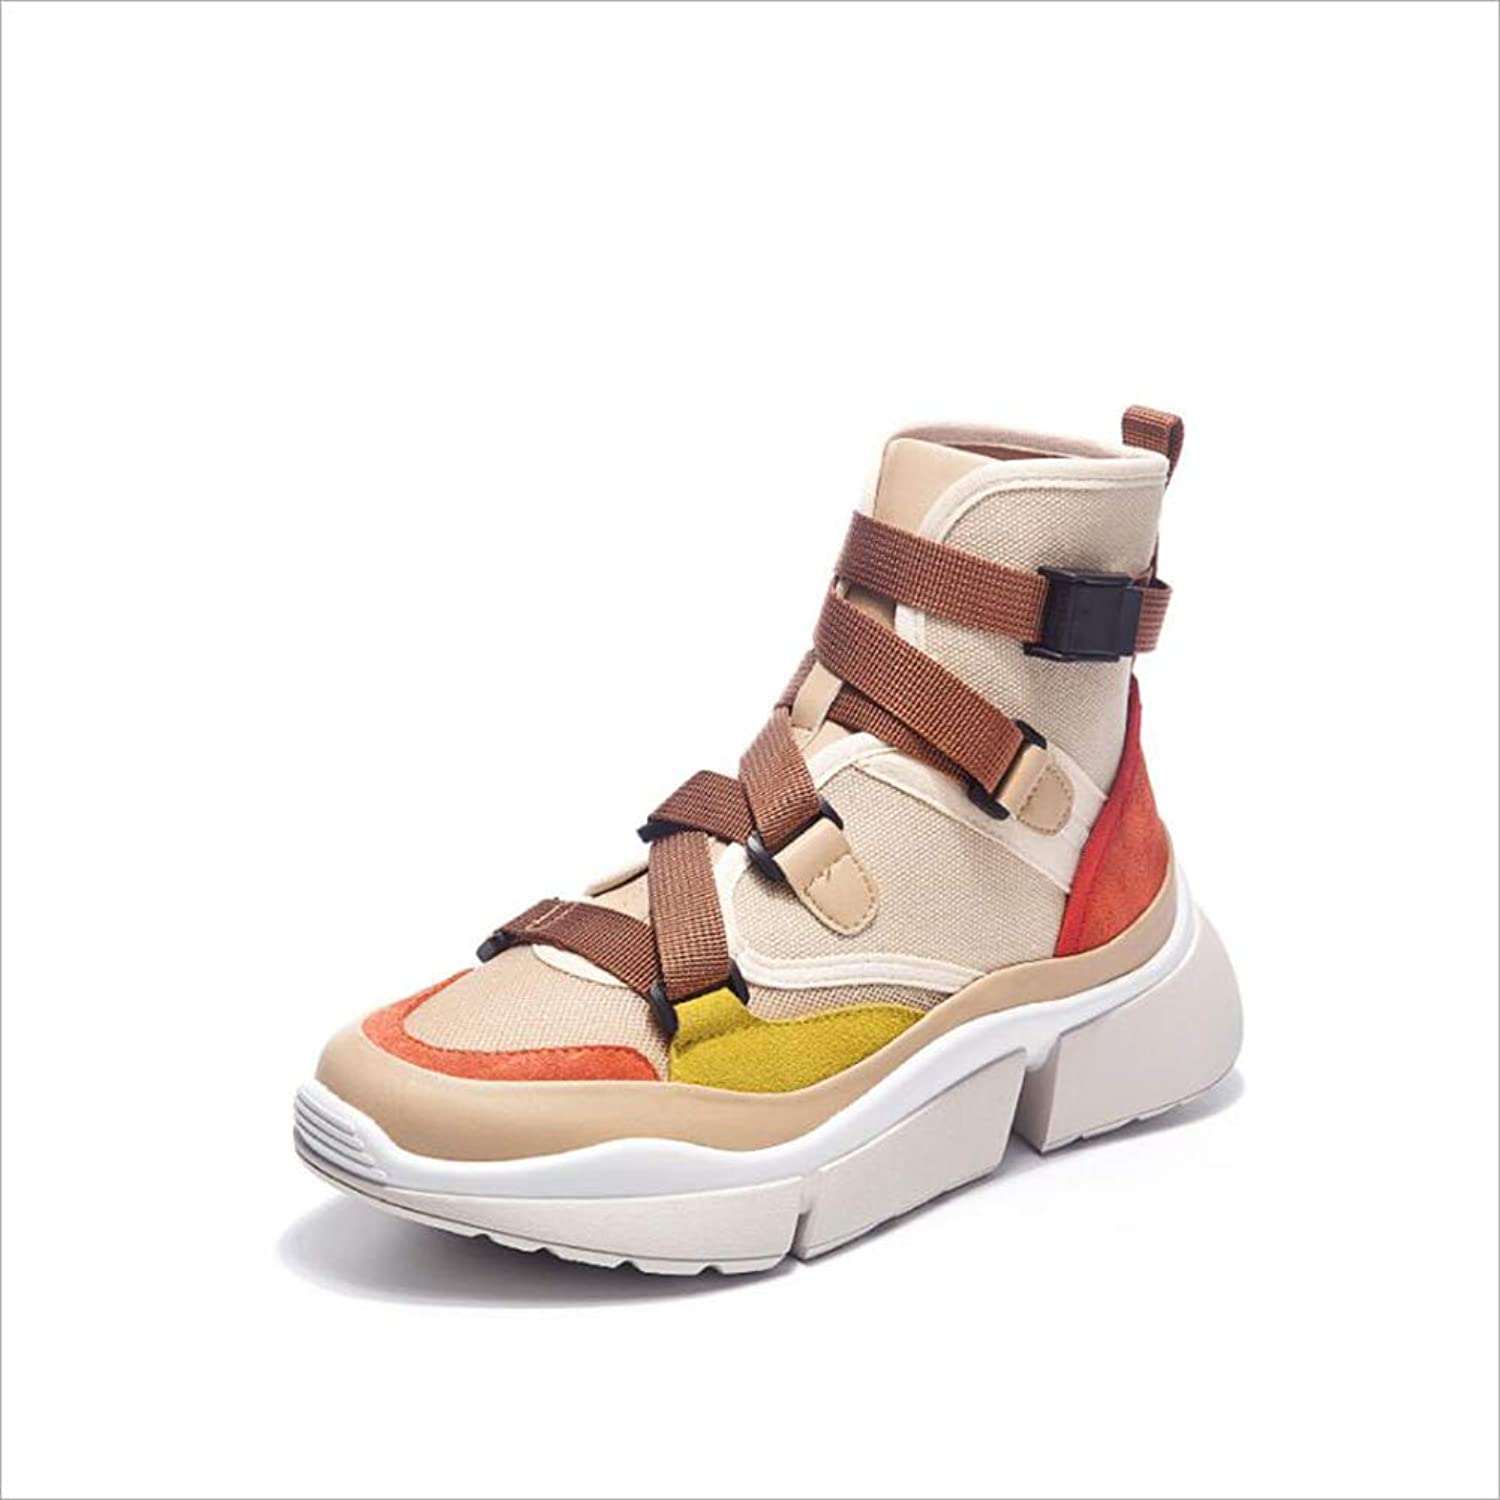 MhC Women's Sneaker, Casual Comfort Trainers shoes,Leather Damping Sneakers, Sport shoes Spring Summer Fall Camping Park